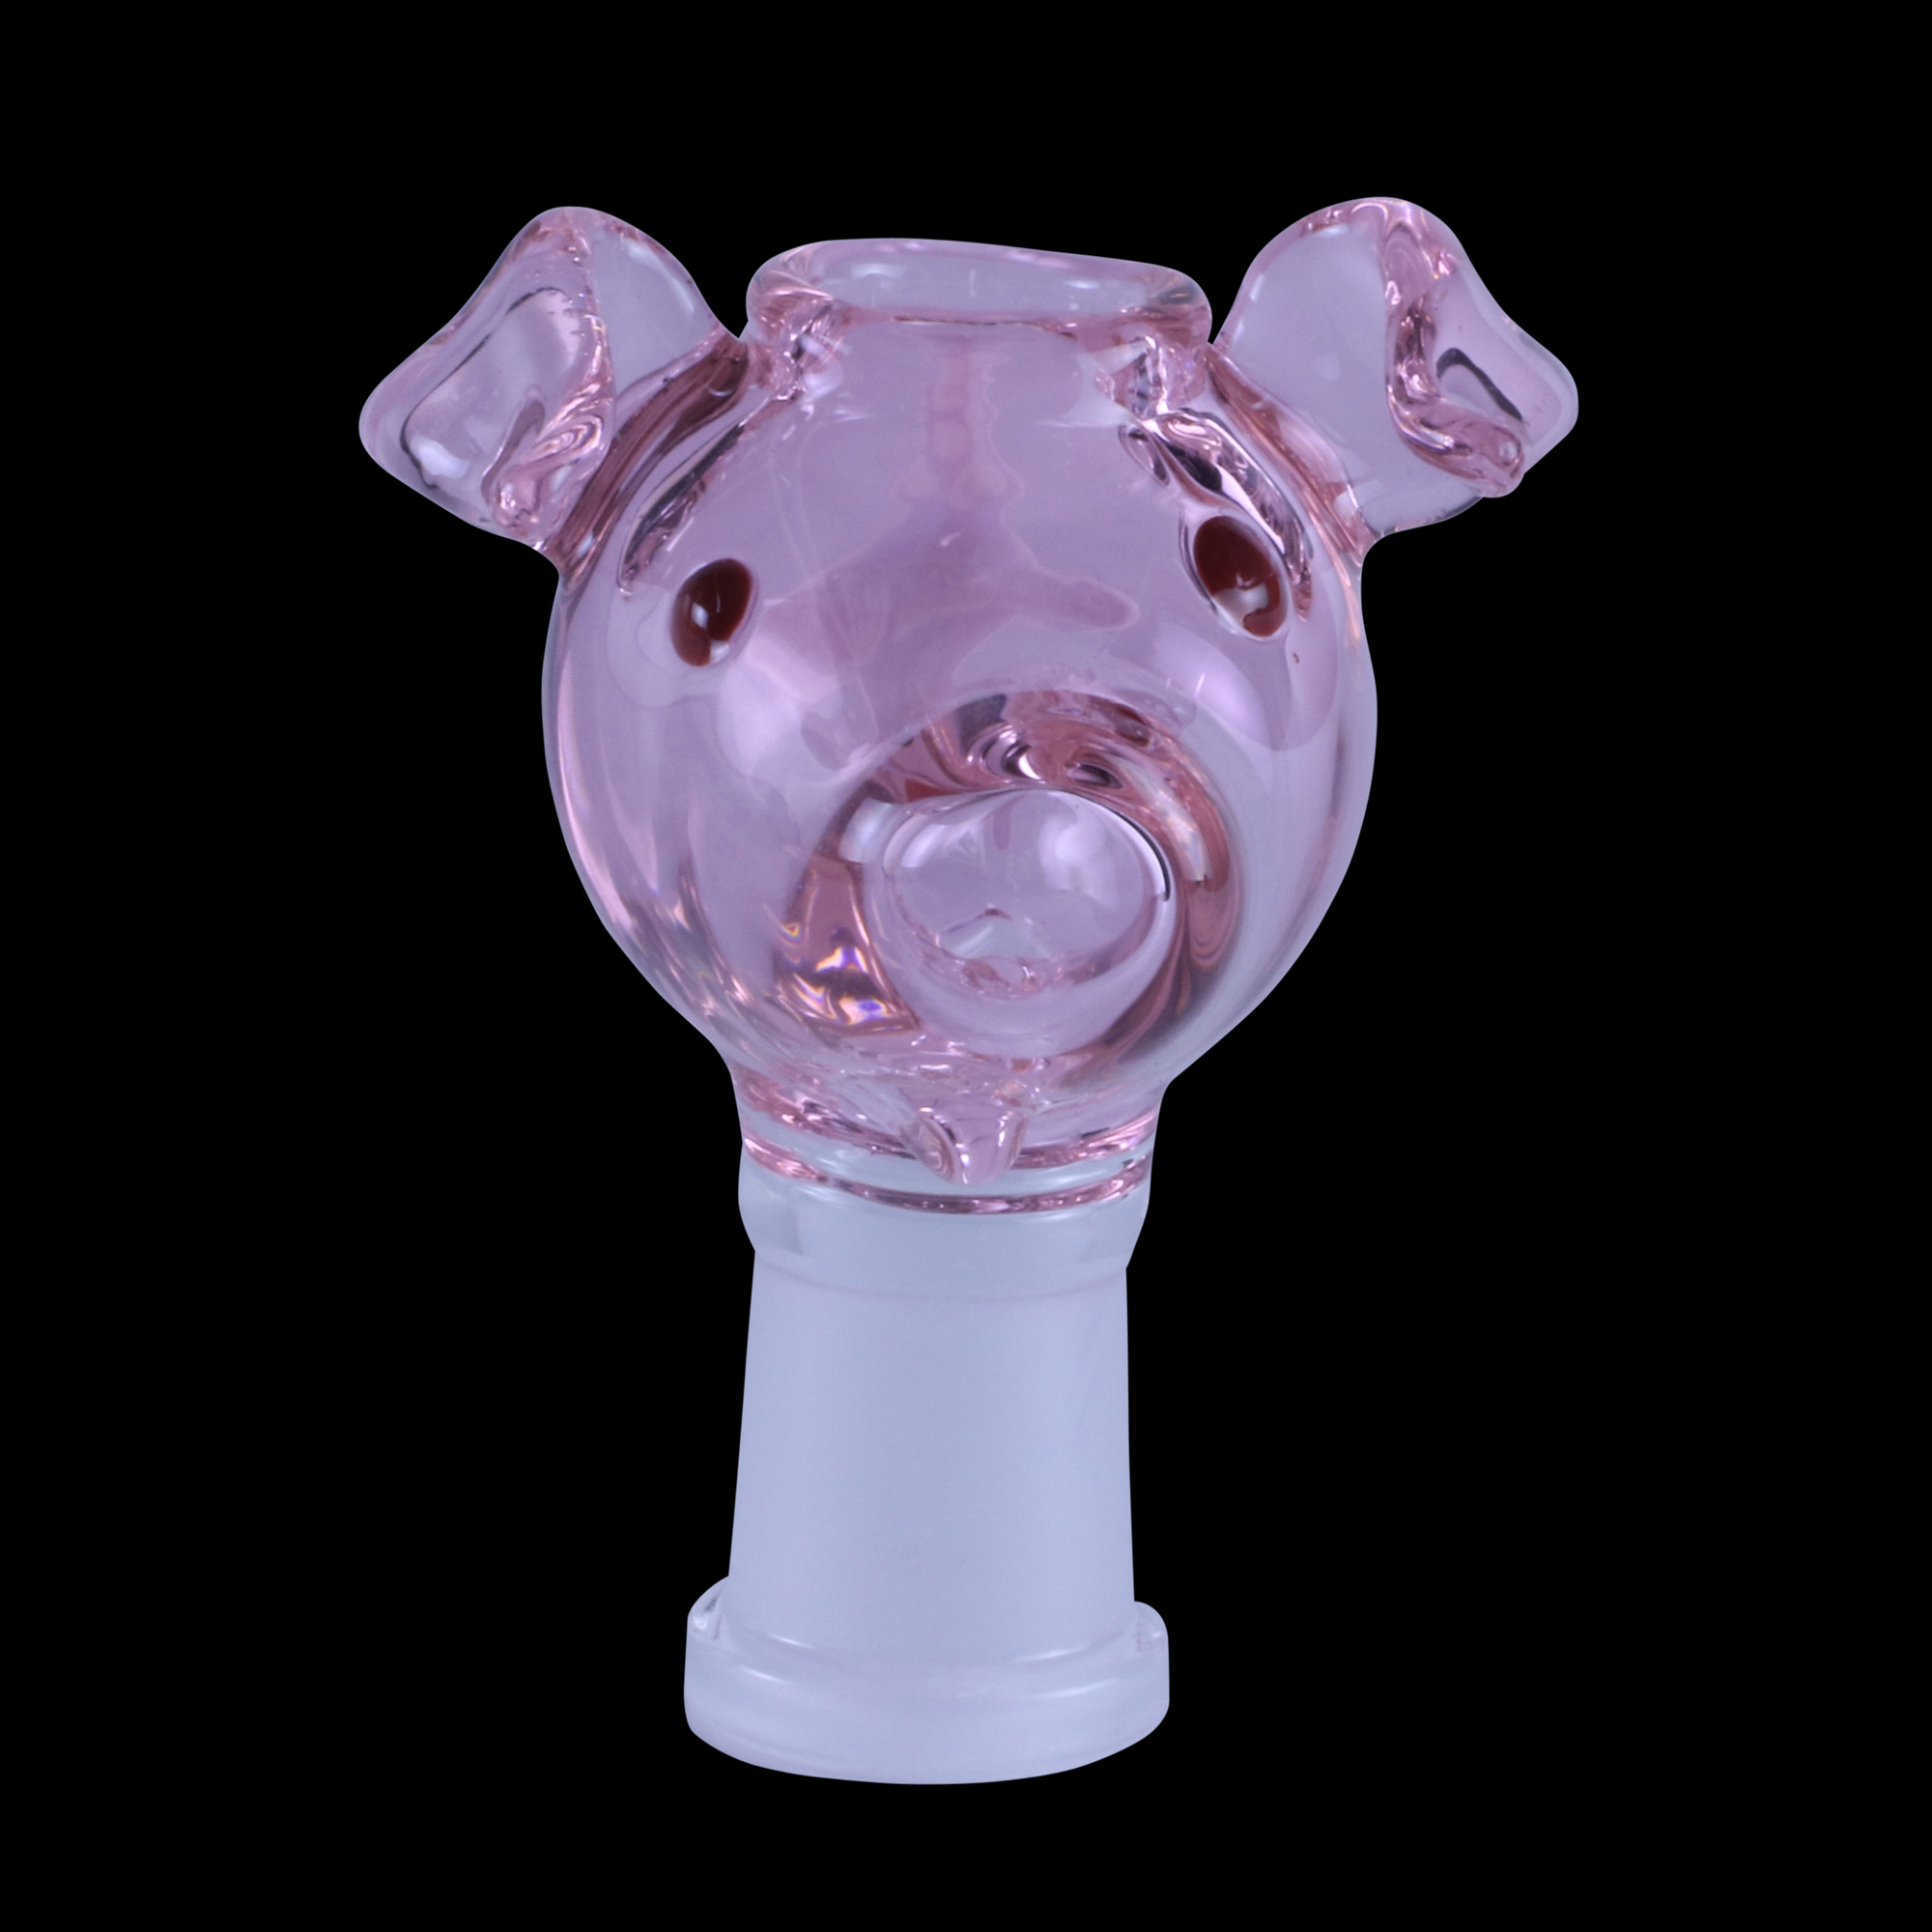 Pink Pig Dome